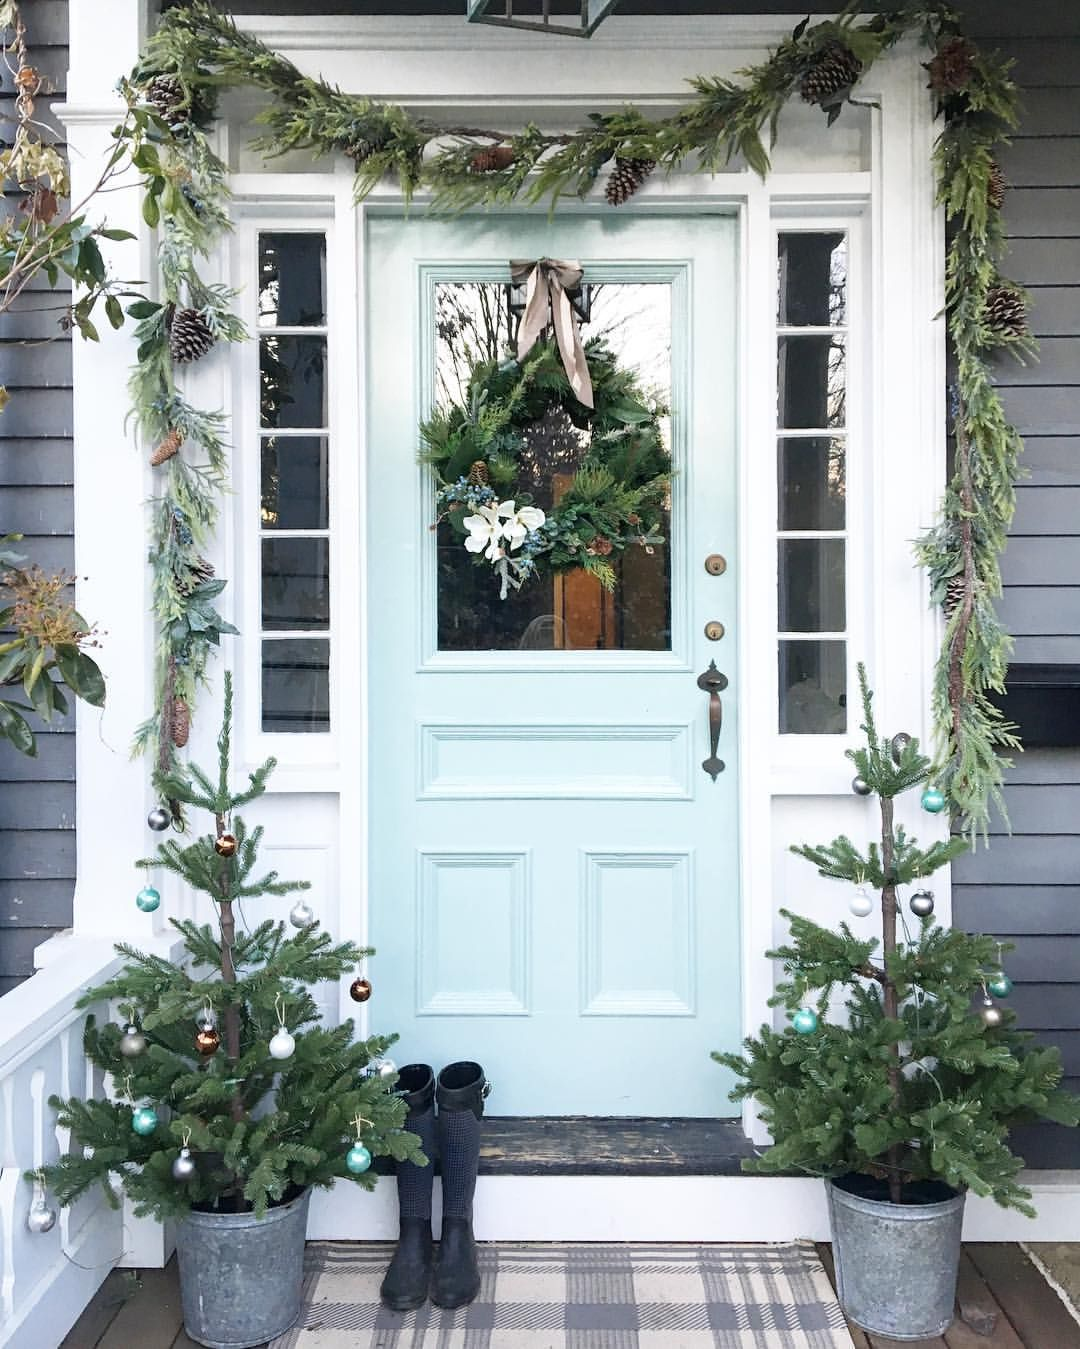 Pinterest Deco Exterieur Holiday Decor On Point Holiday Pinterest Decoration